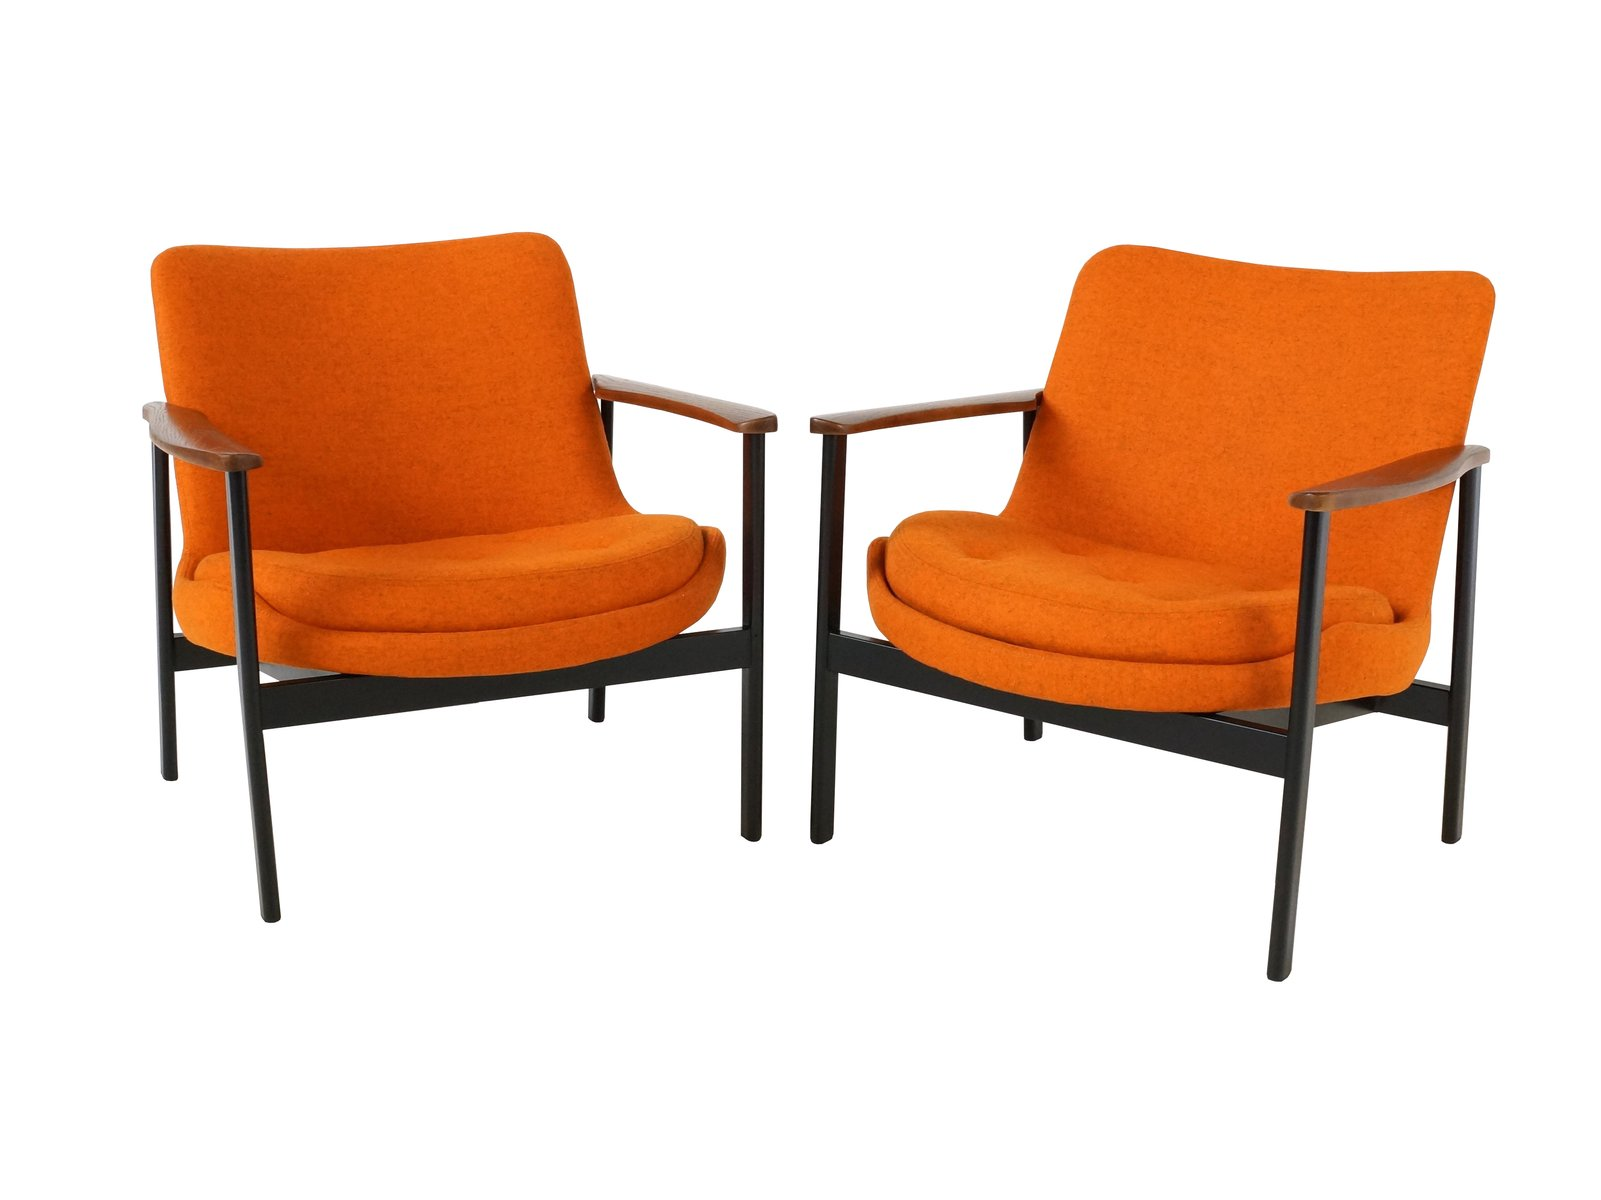 Orange Mid-Century Armchairs, 1950s, Set of 2 for sale at ...